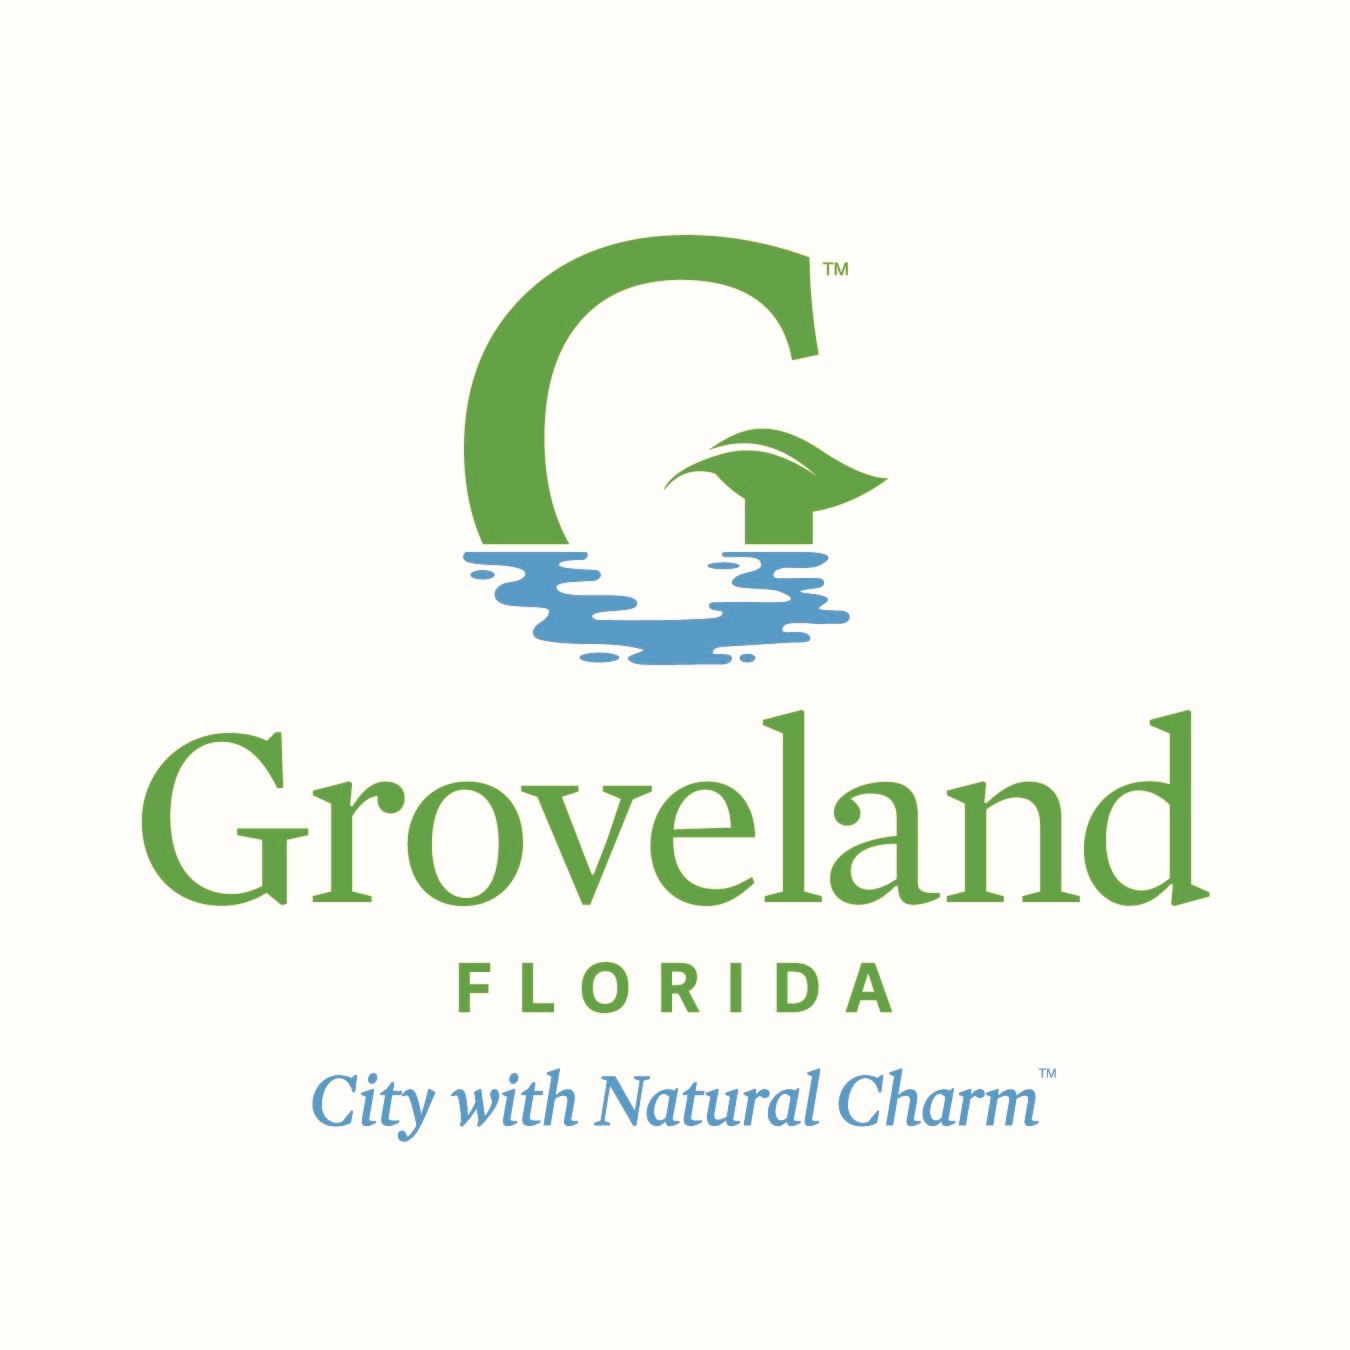 City of Groveland logo